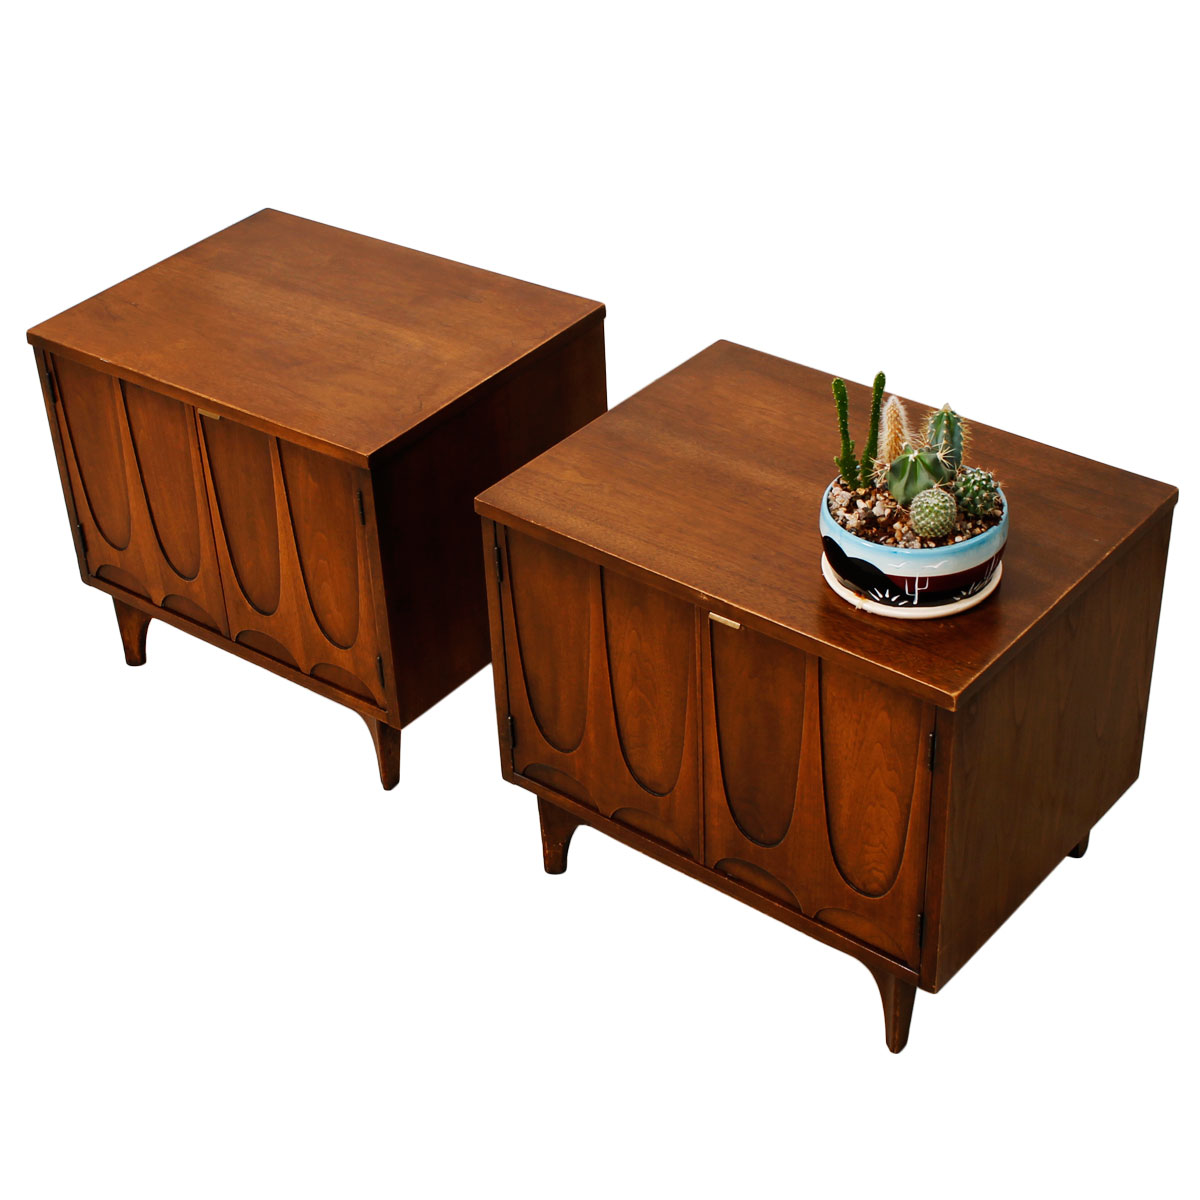 Pair Of Broyhill Brasilia Commodes Nightstands Accent Tables With Legs